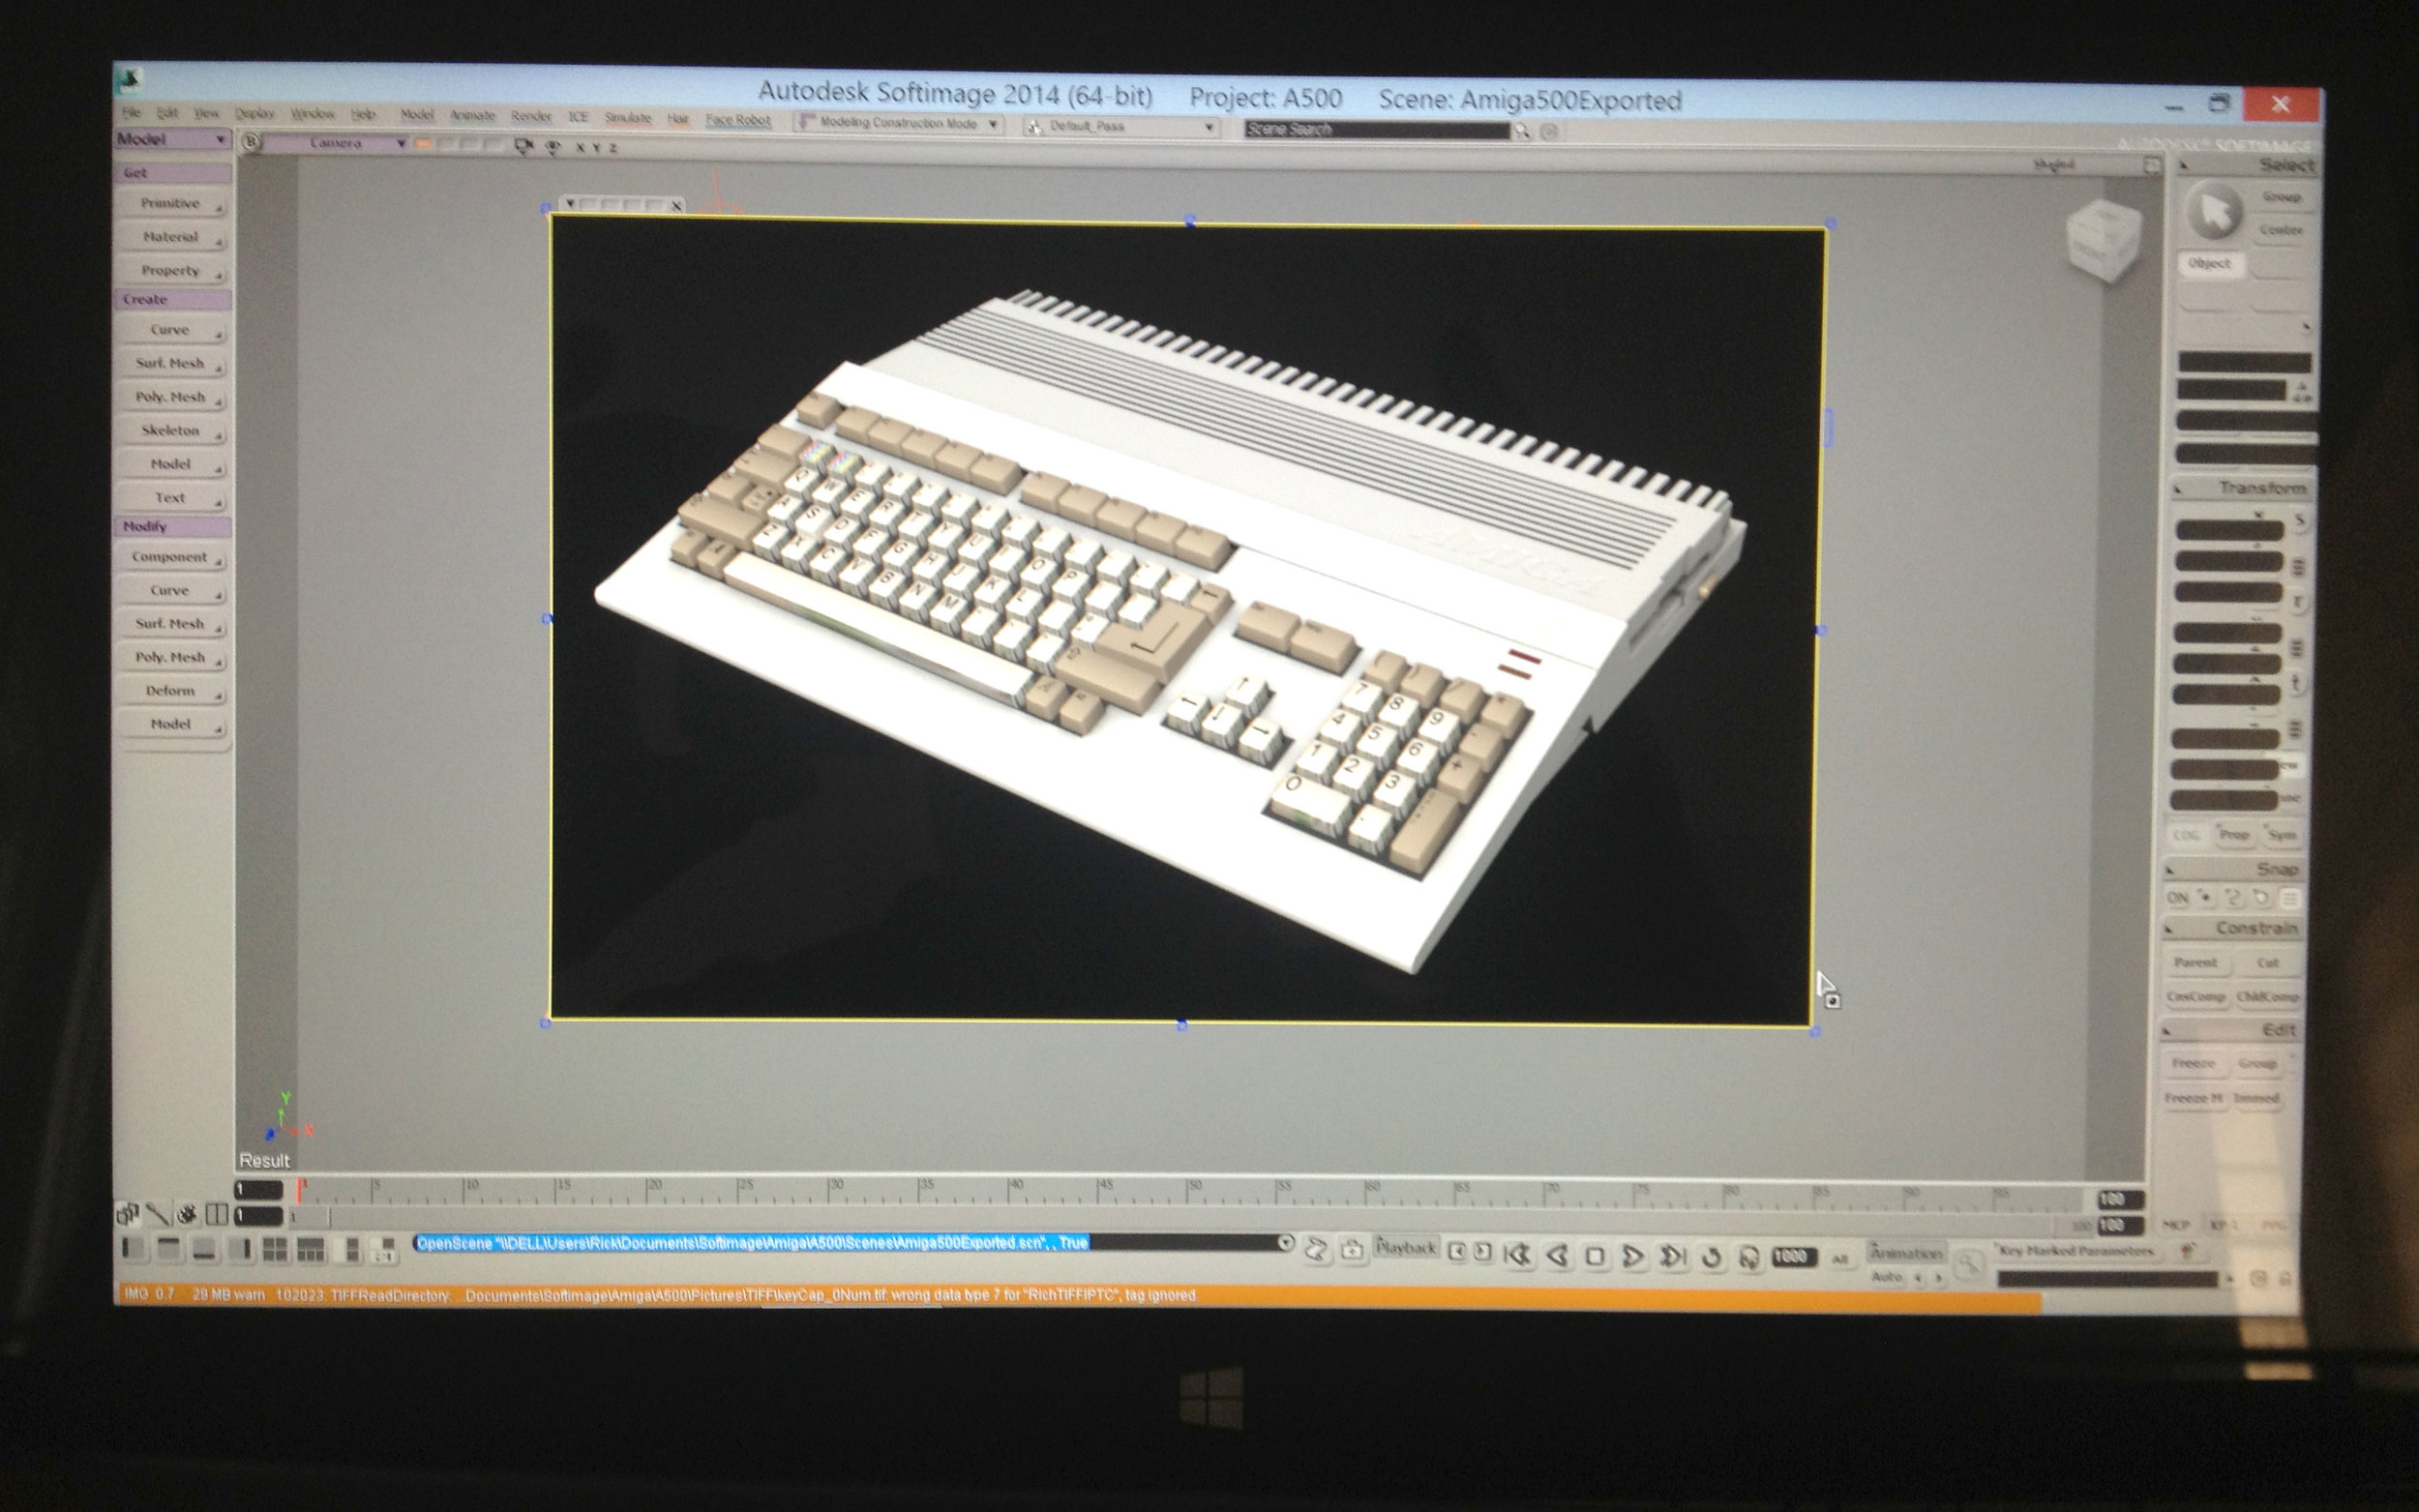 The Amiga 500, modeled and region rendered in Softimage 2014 on the Surface Pro. Mental Ray, full anti-aliasing, two lights, 27,000 triangles, 110 objects, 95 textures and the Surface Pro didn't even break a sweat.